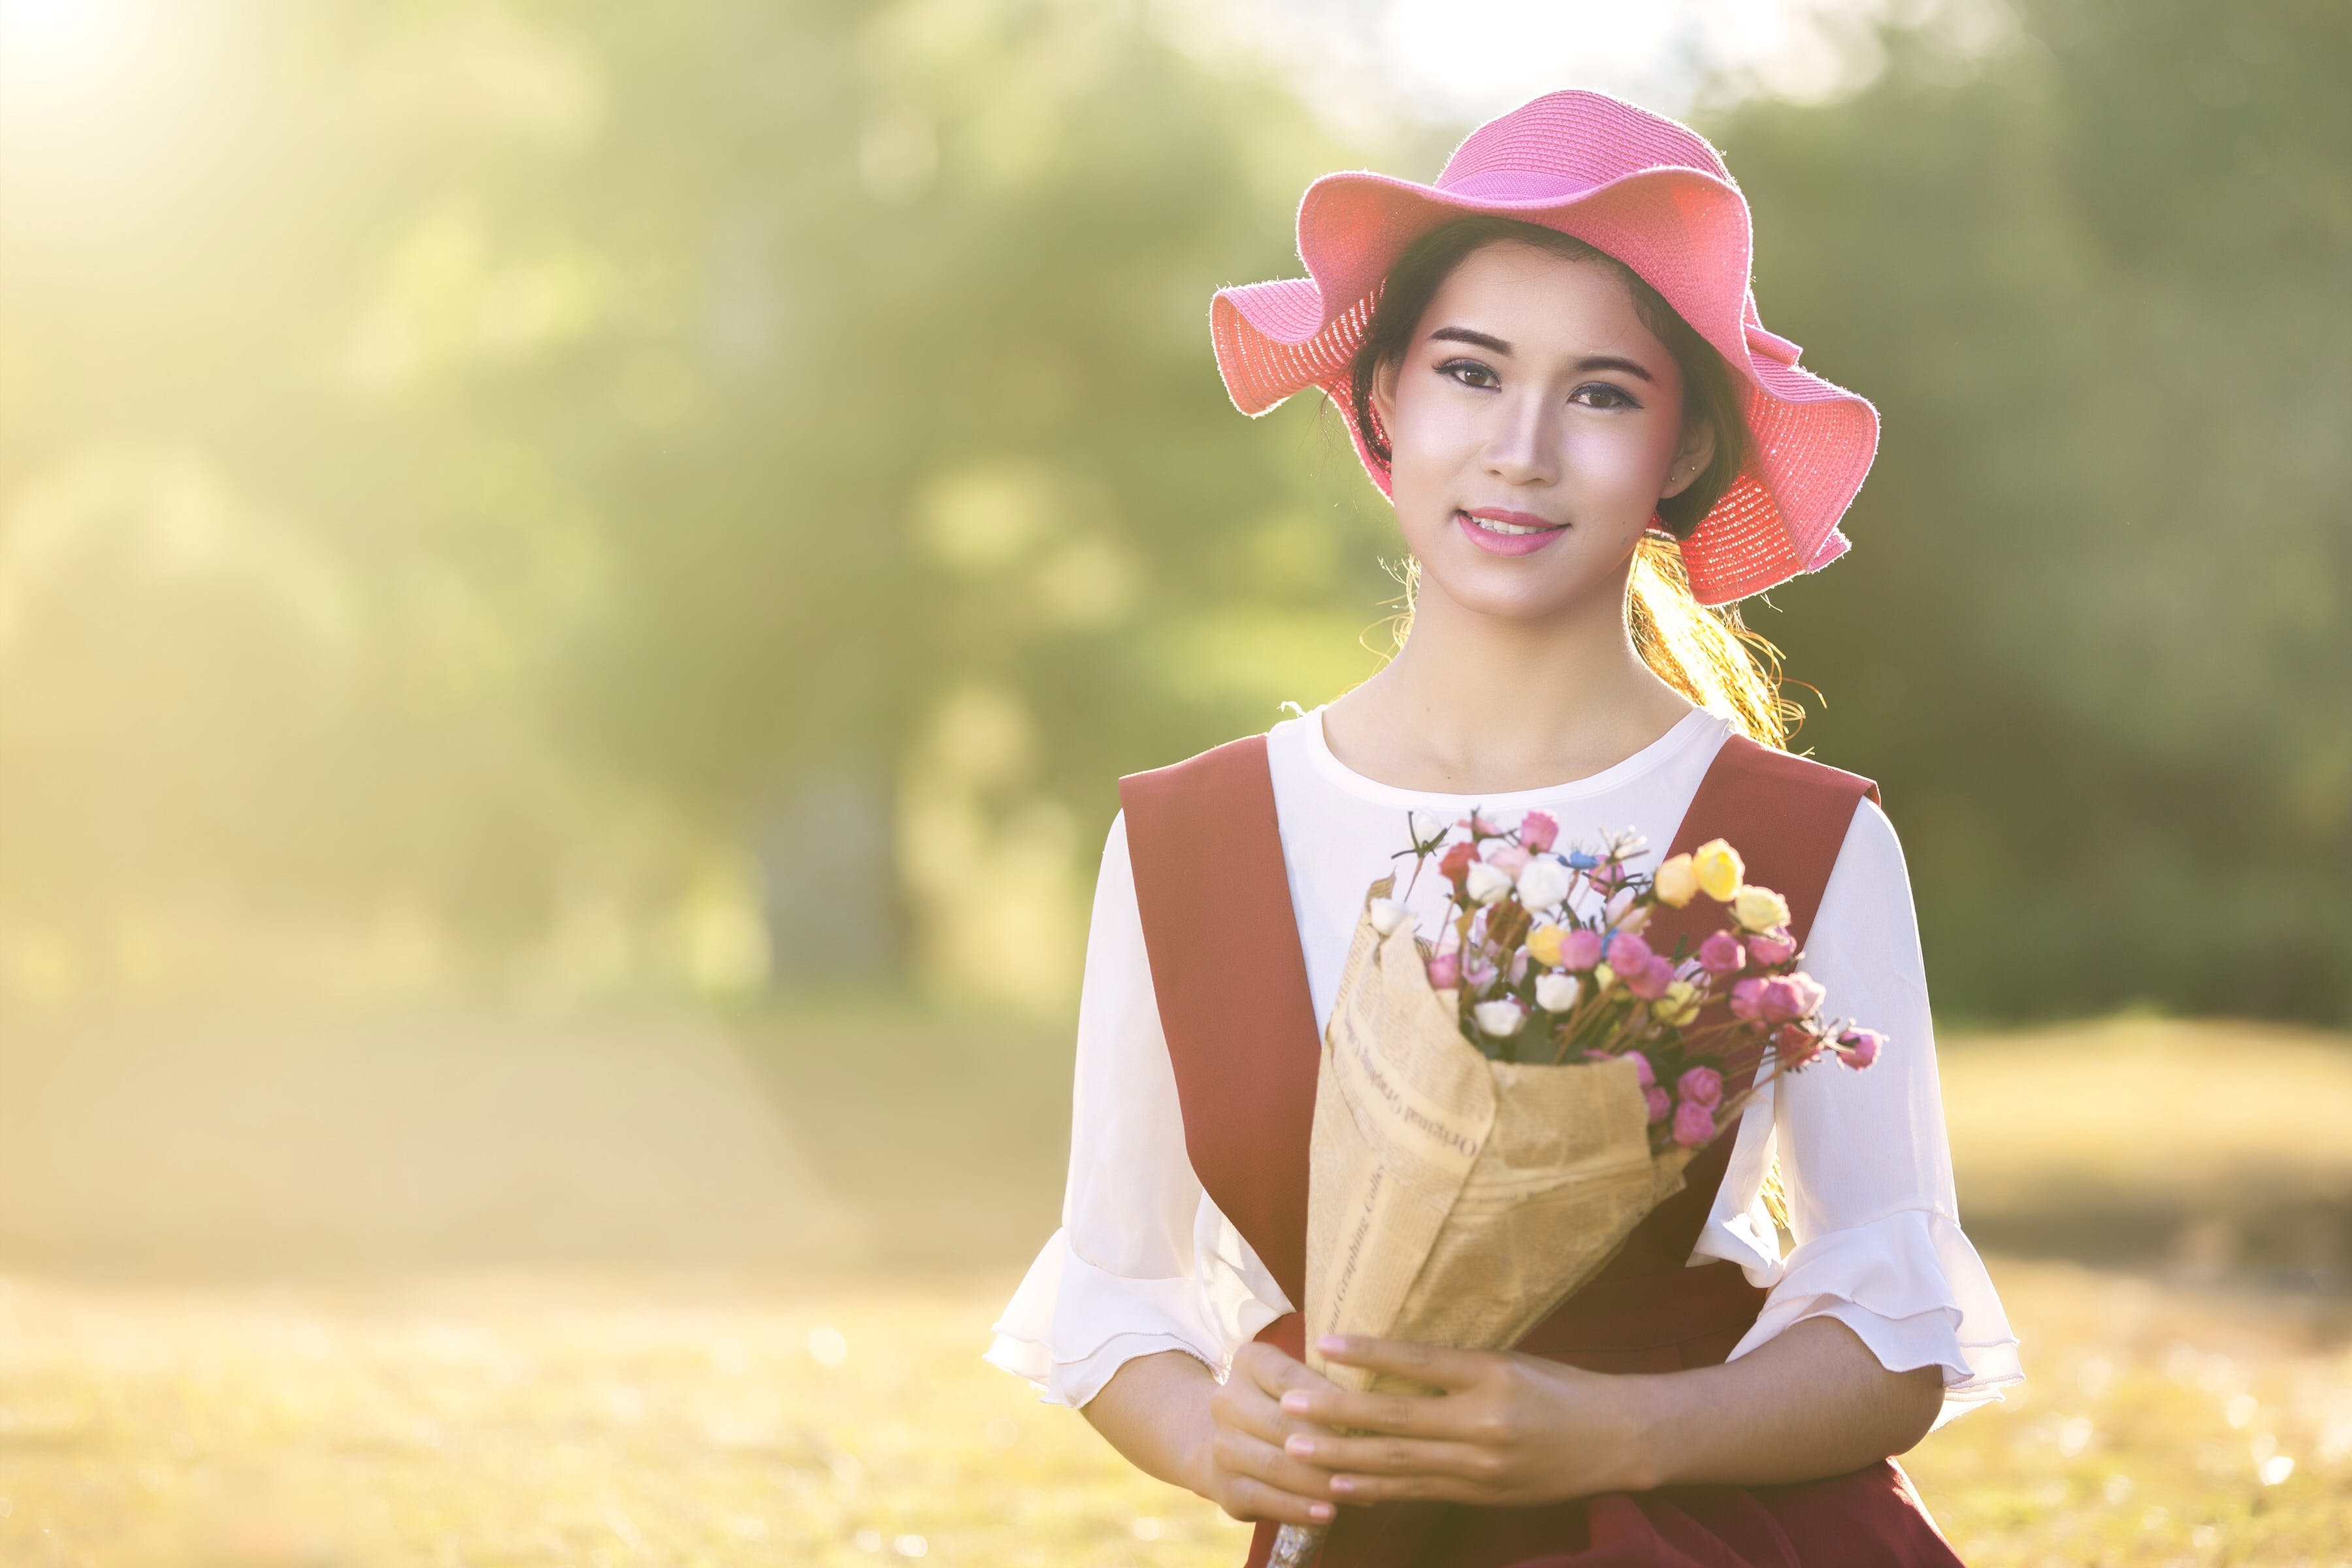 Royalty free images of person, woman, field, flowers